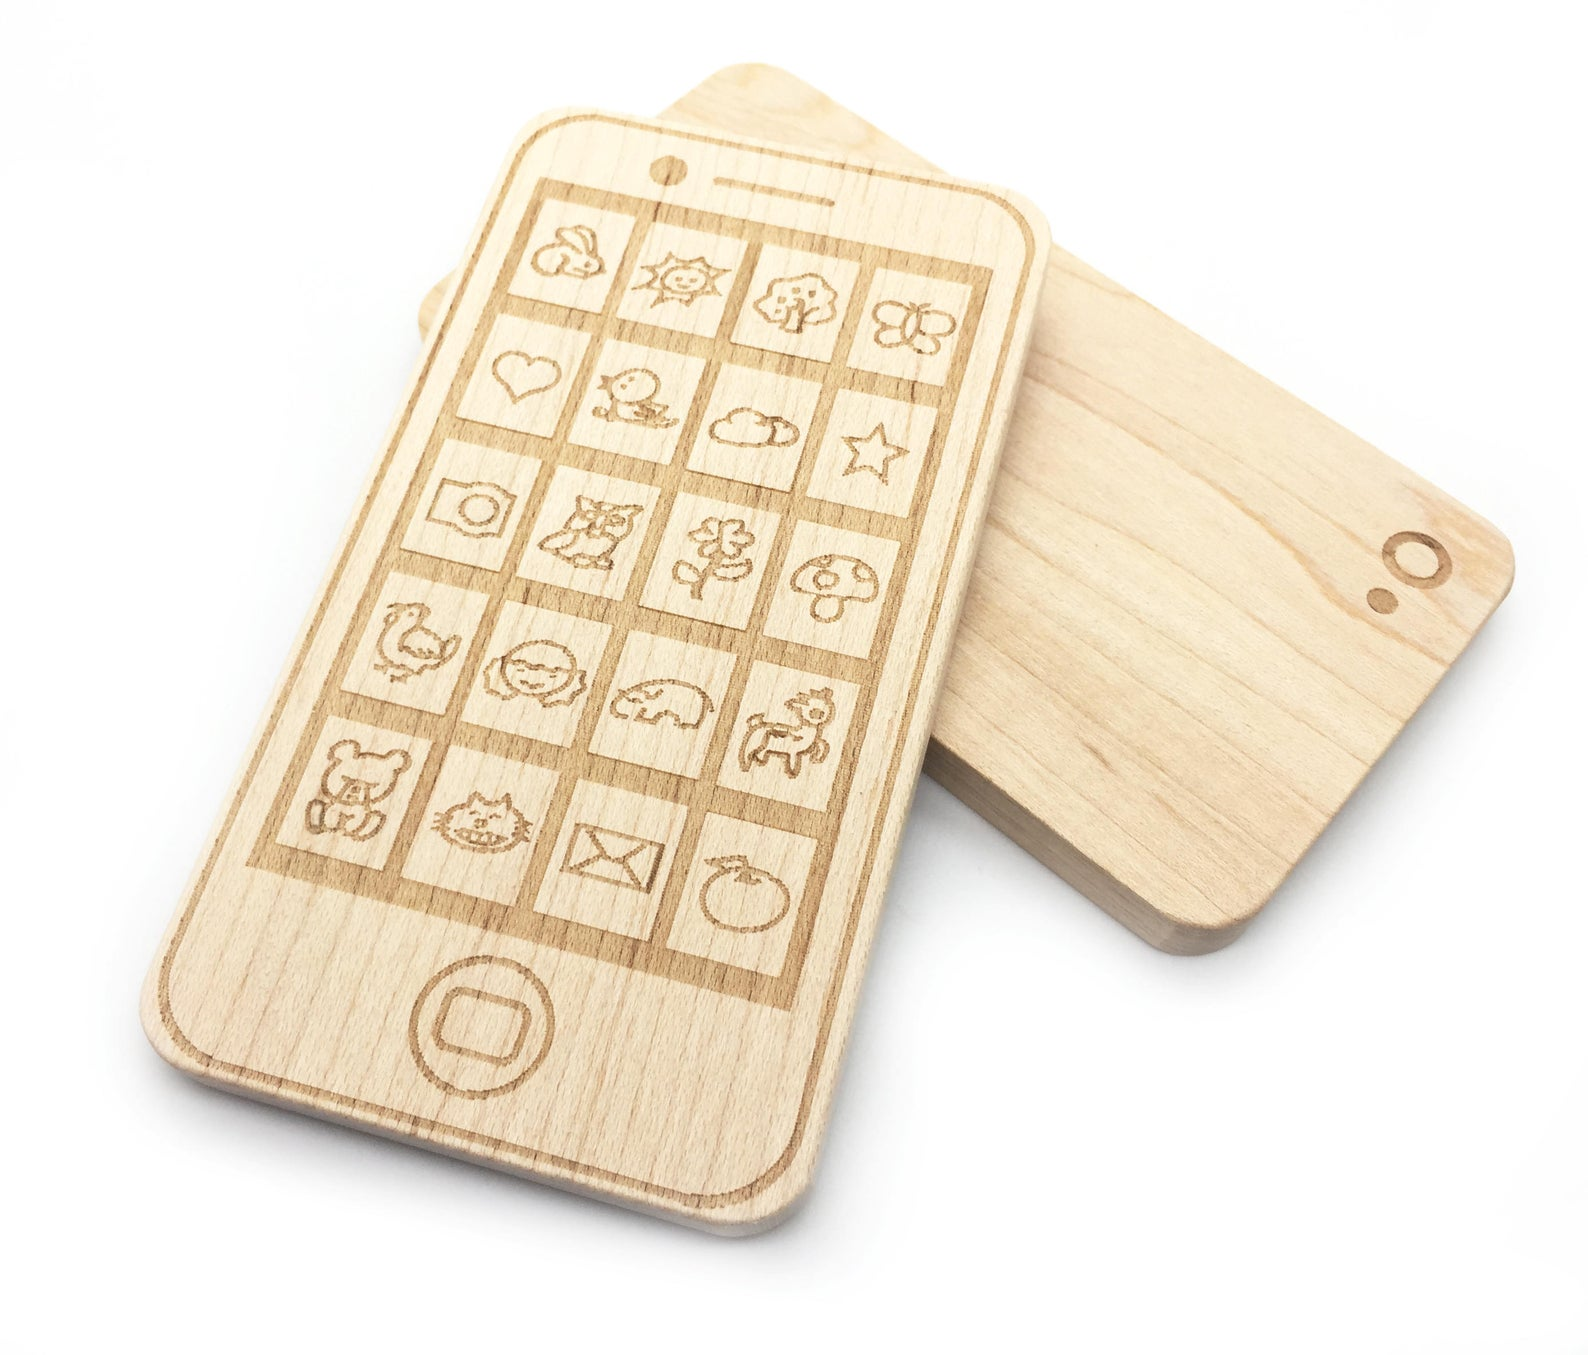 Wooden teething phone for babies ETSY